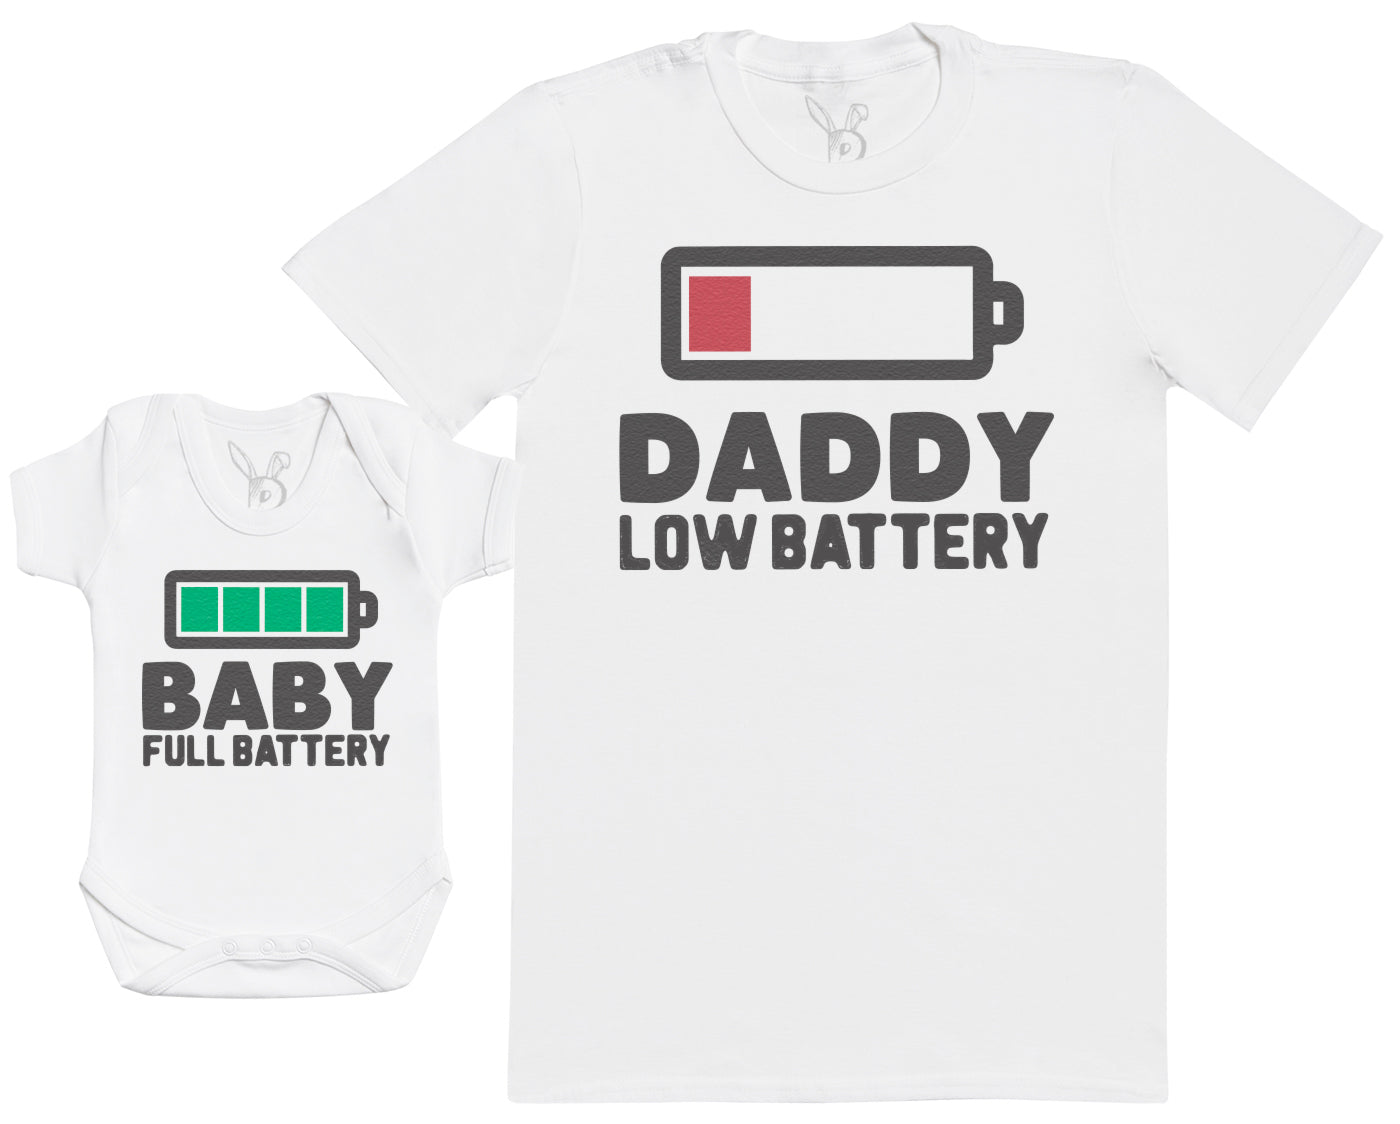 Baby Full Battery - Baby Gift Set with Baby Bodysuit & Father's T-Shirt